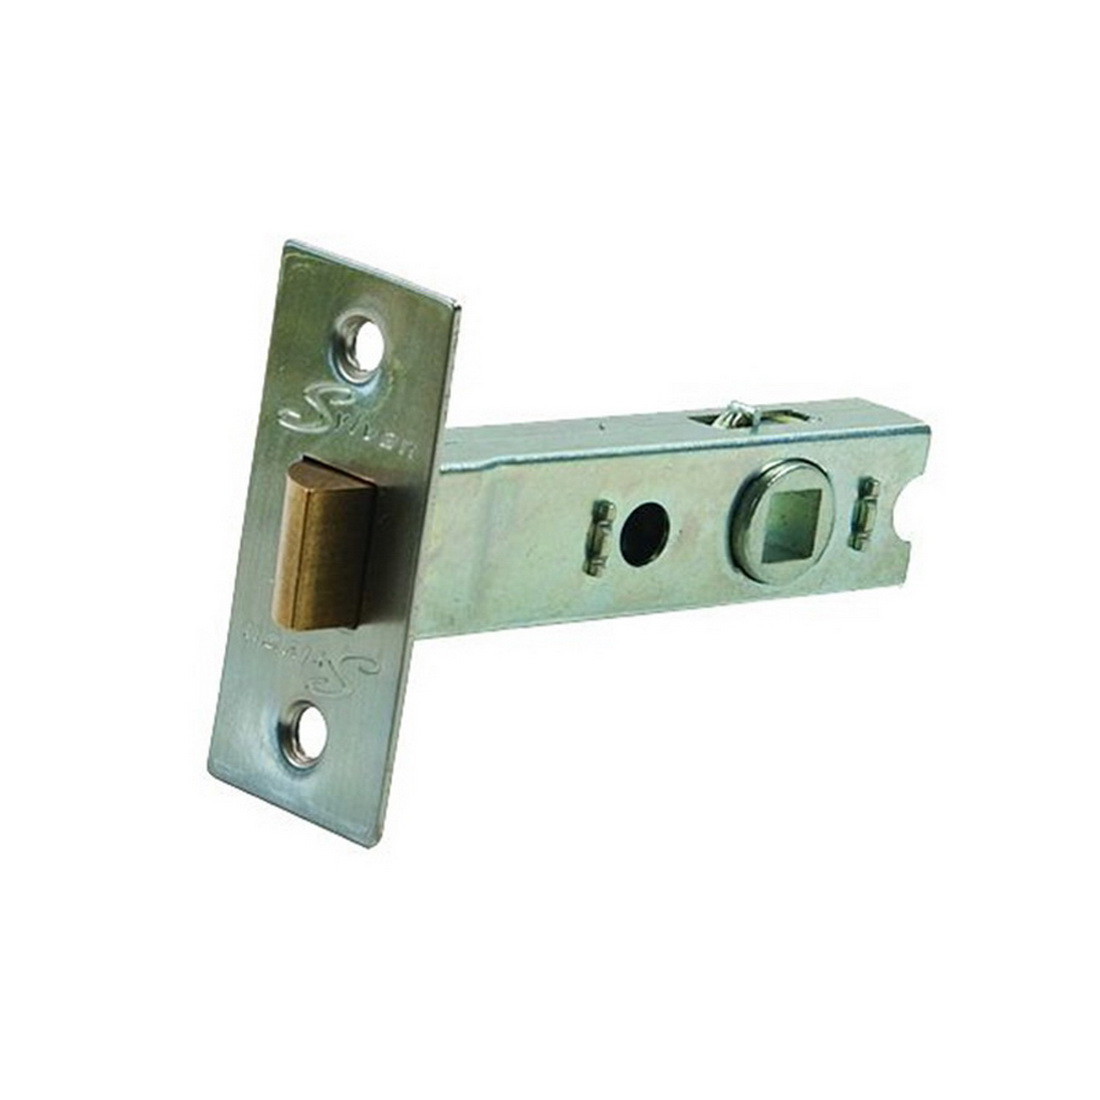 Tubular Mortice Latch 60mm 7.6 x 7.6mm Spindle Satin Nickel Plate MLS60.SNP